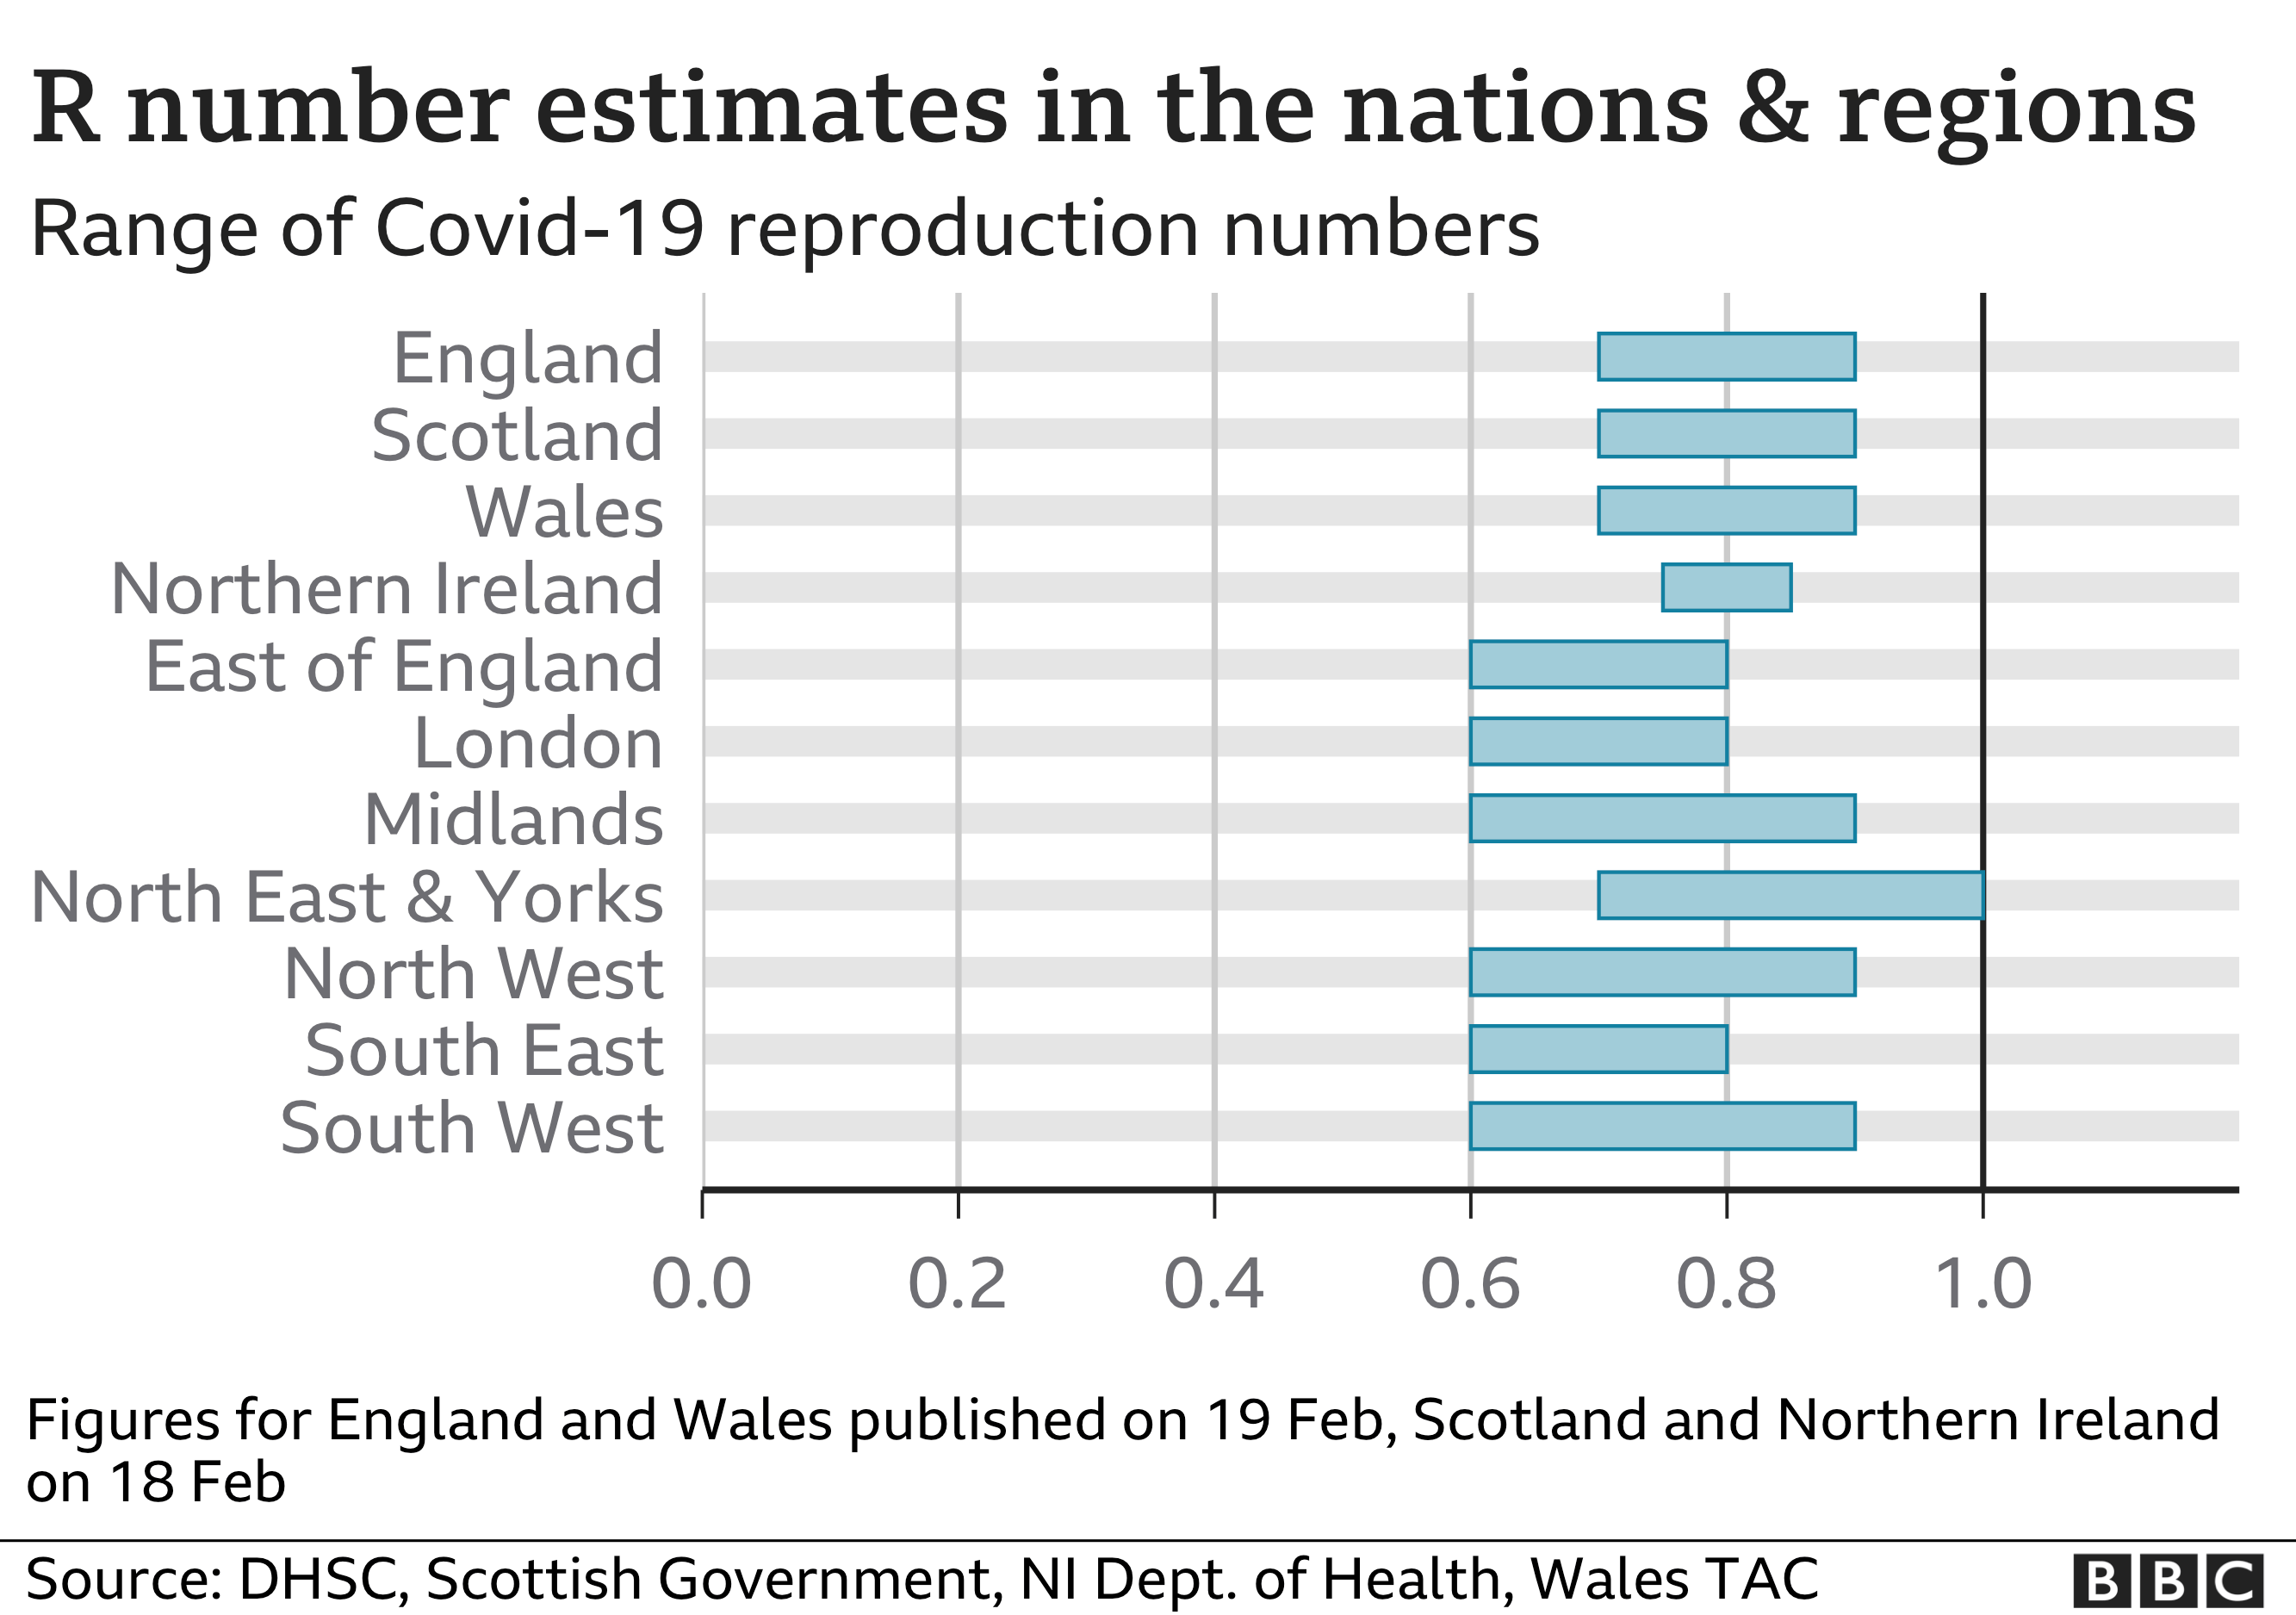 R number estimates in the nations and regions 19 Feb